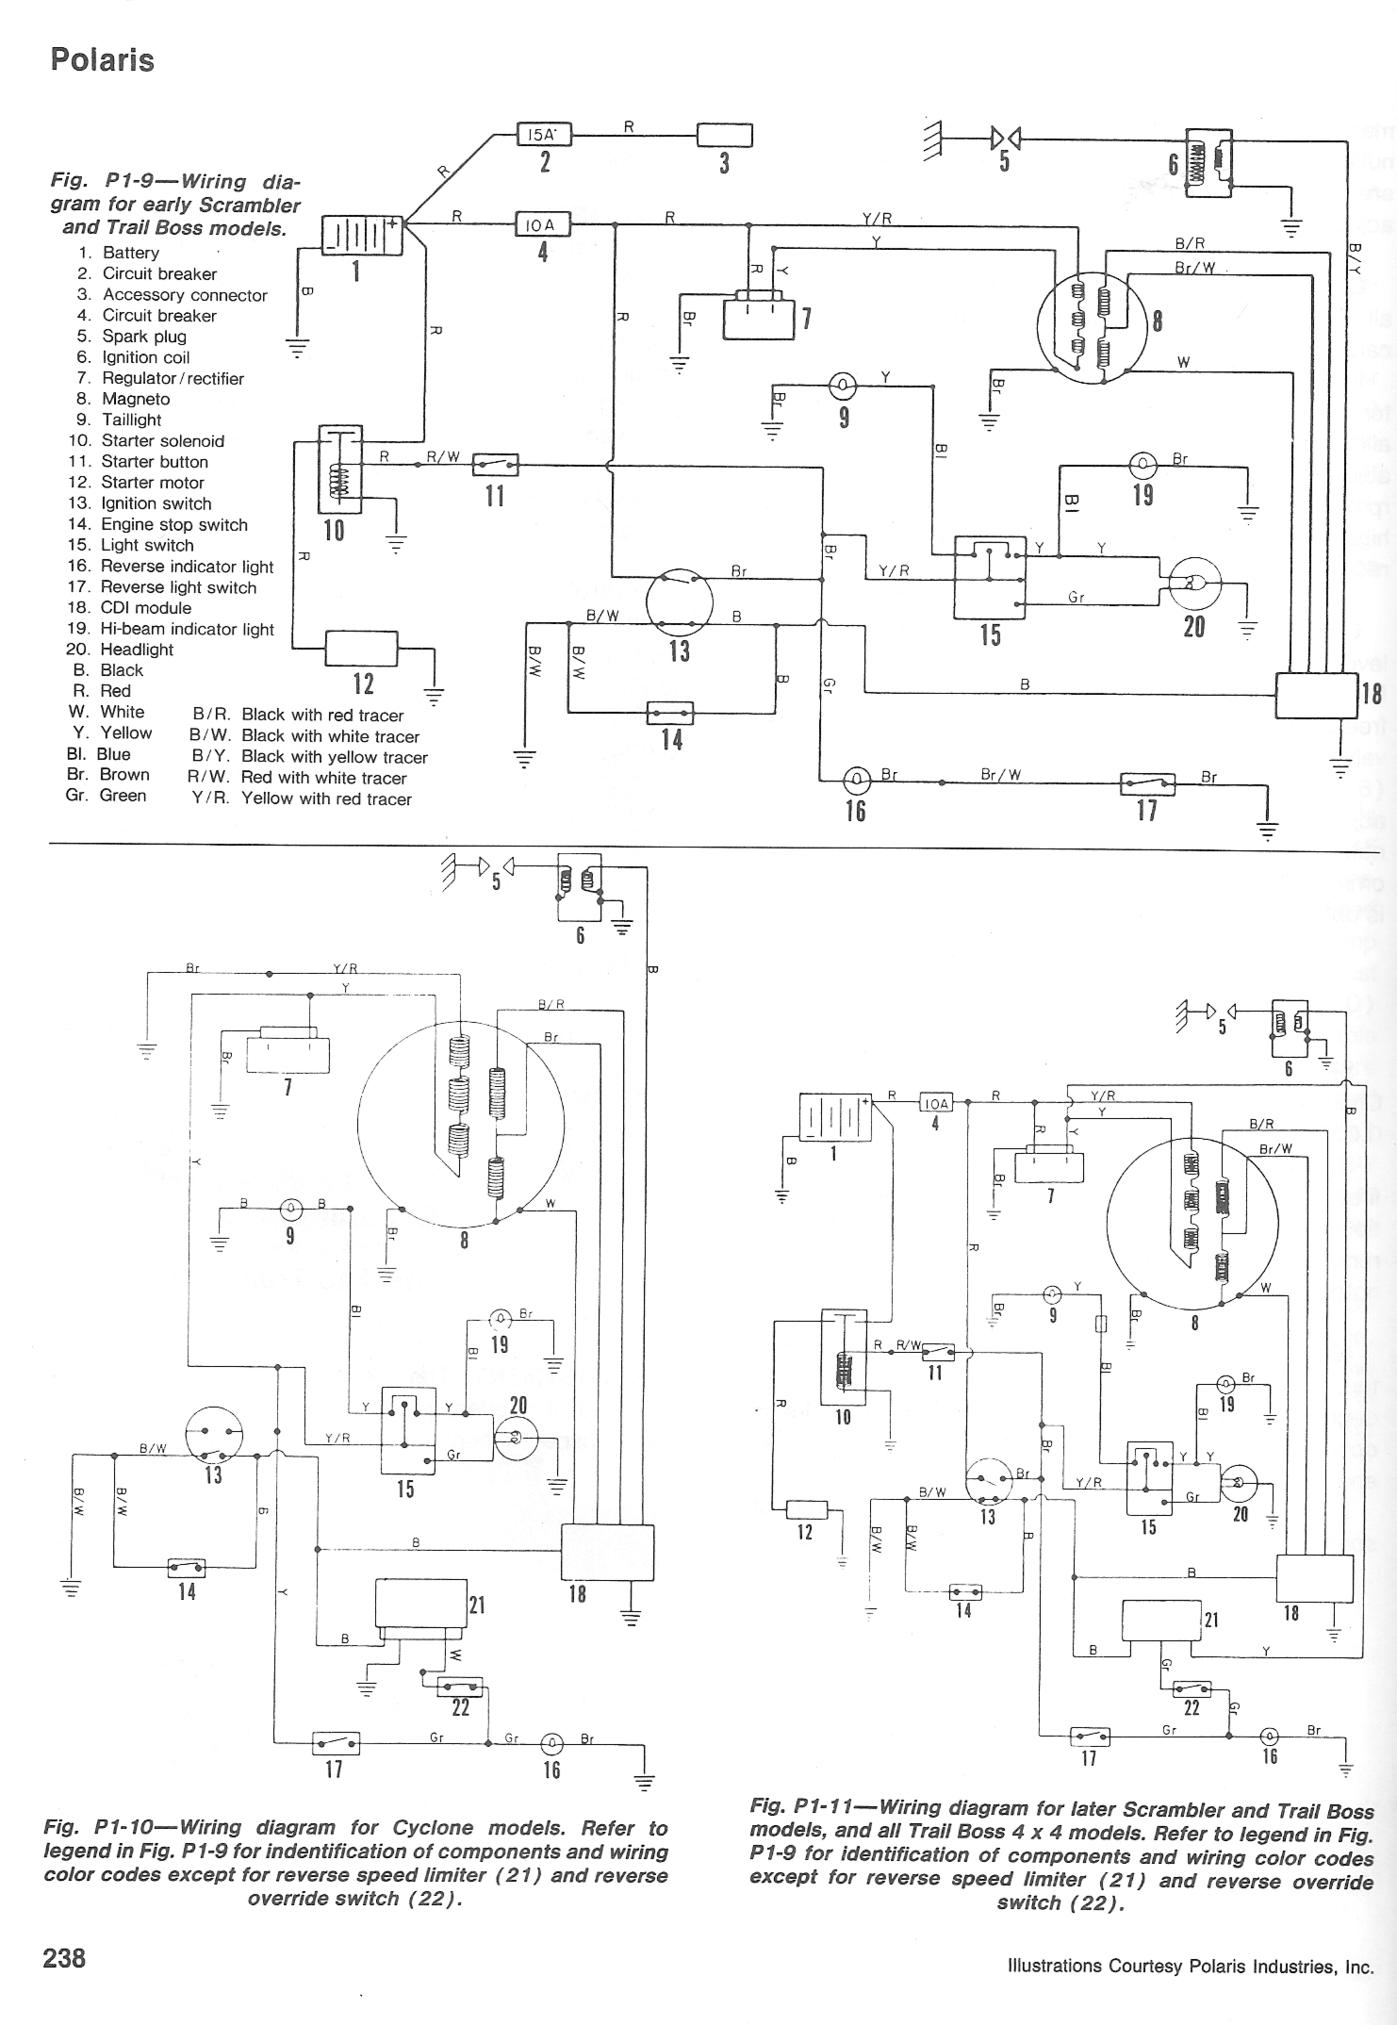 polaris sportsman 850 wiring diagram | wiring library battery cable wiring diagram polaris scrambler wiring diagram polaris indy 600